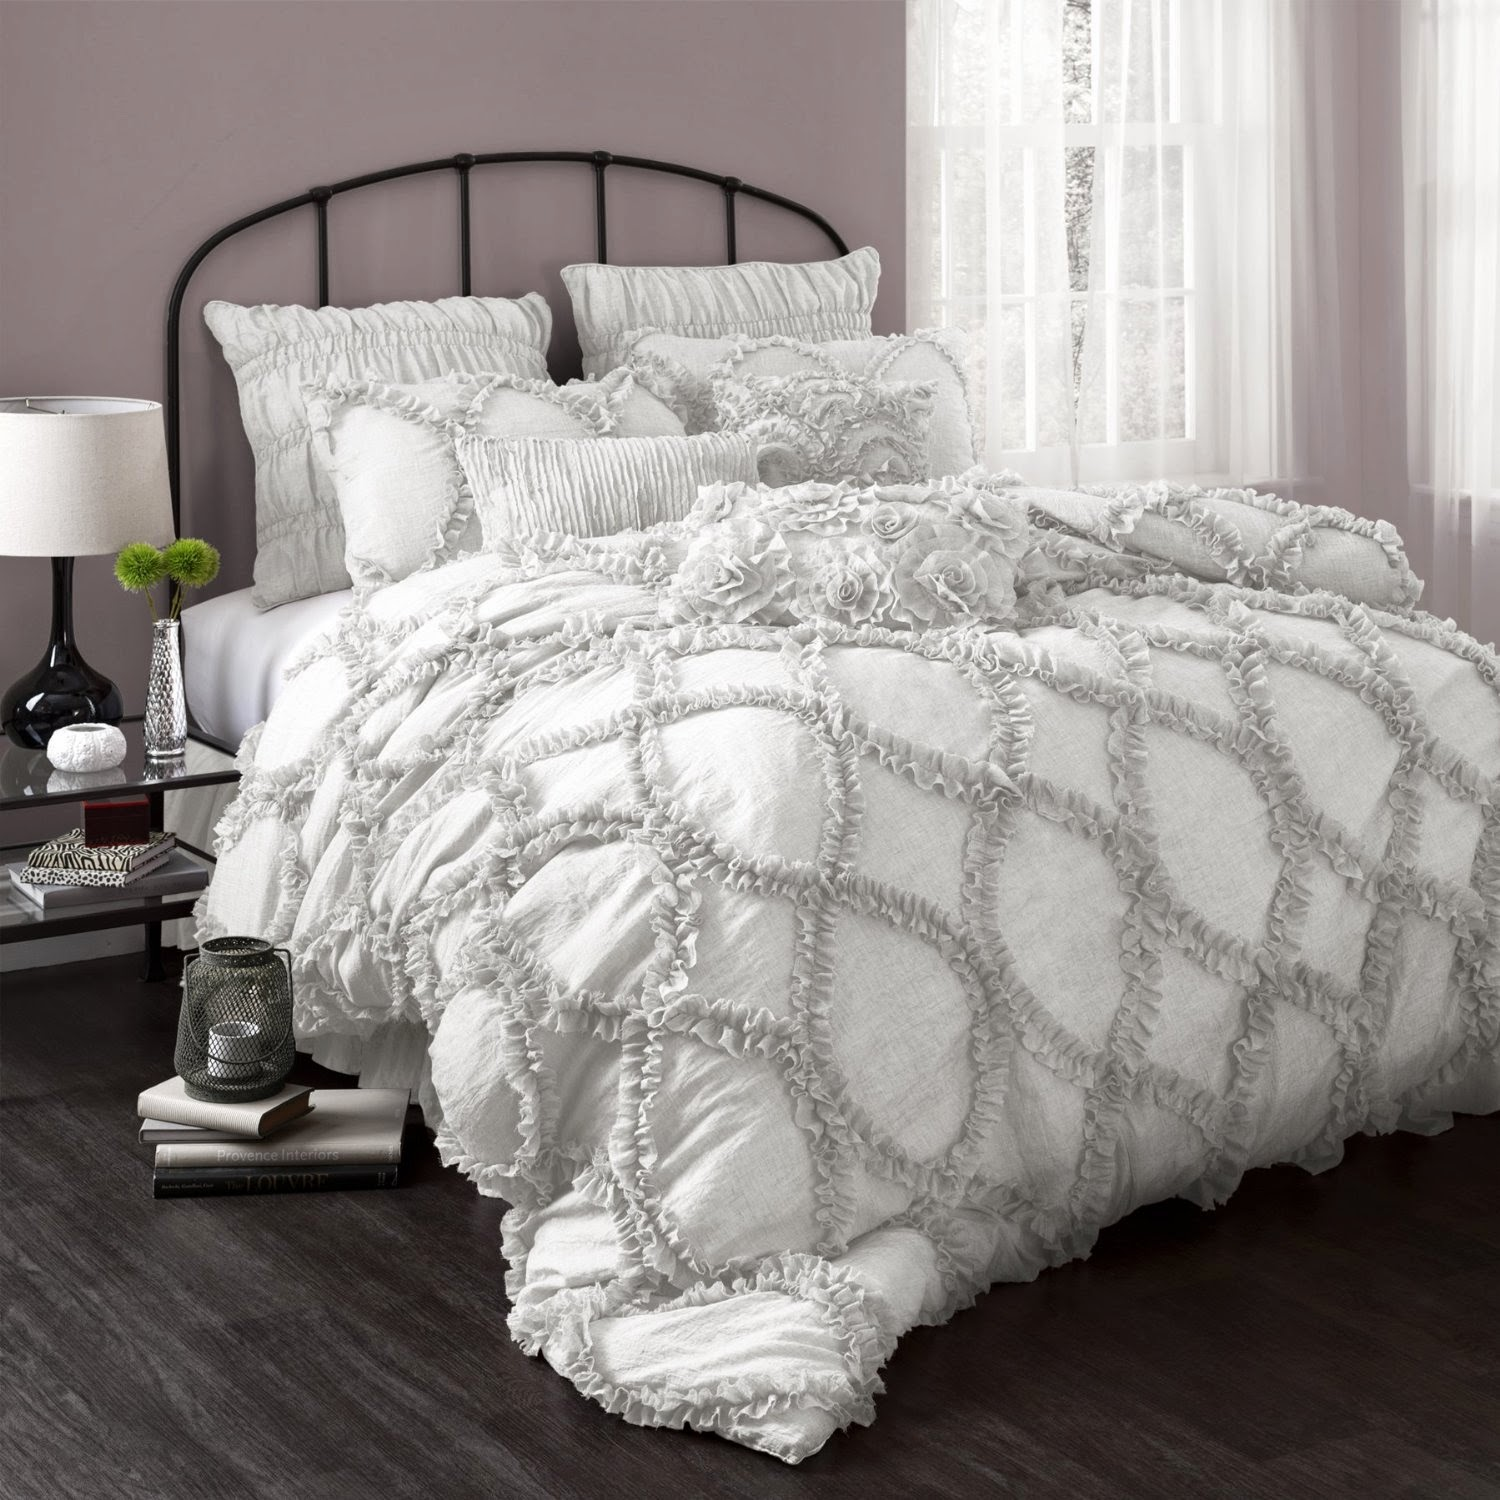 Jcp Bedding | Wayfair Bedding | Queen Bedspreads